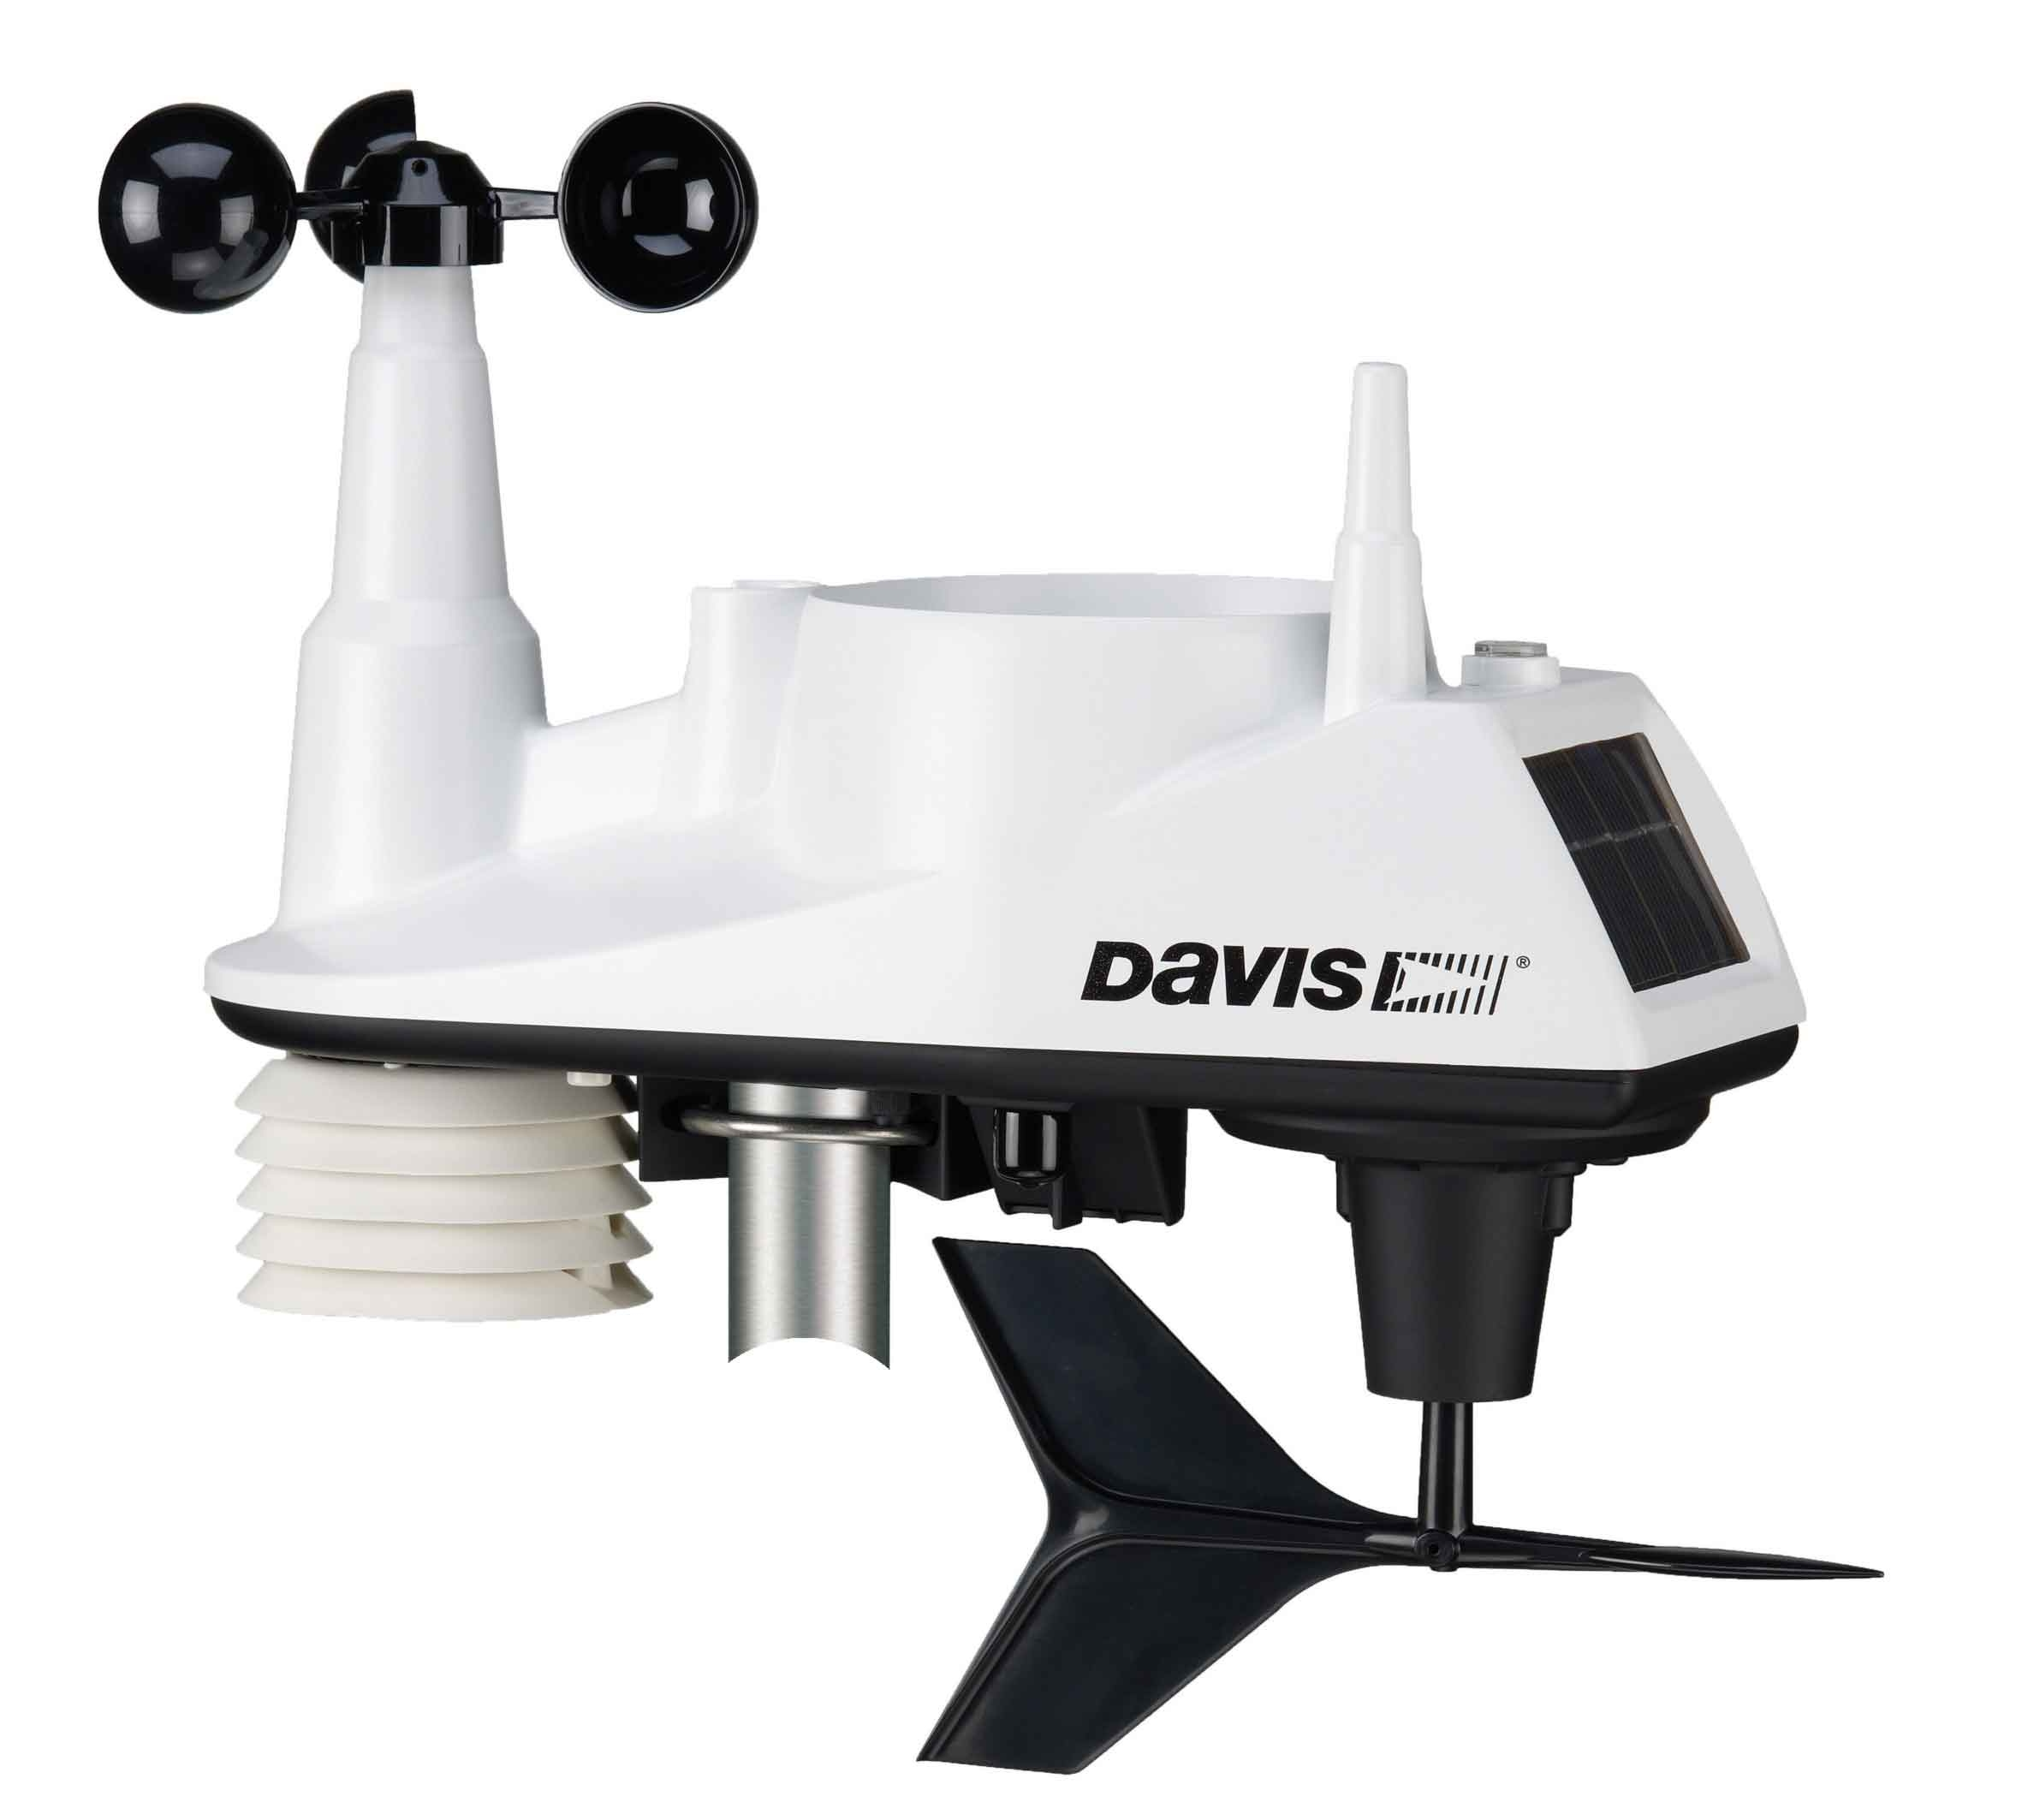 Davis WH-VP2VueSens Davis weather station combination pack